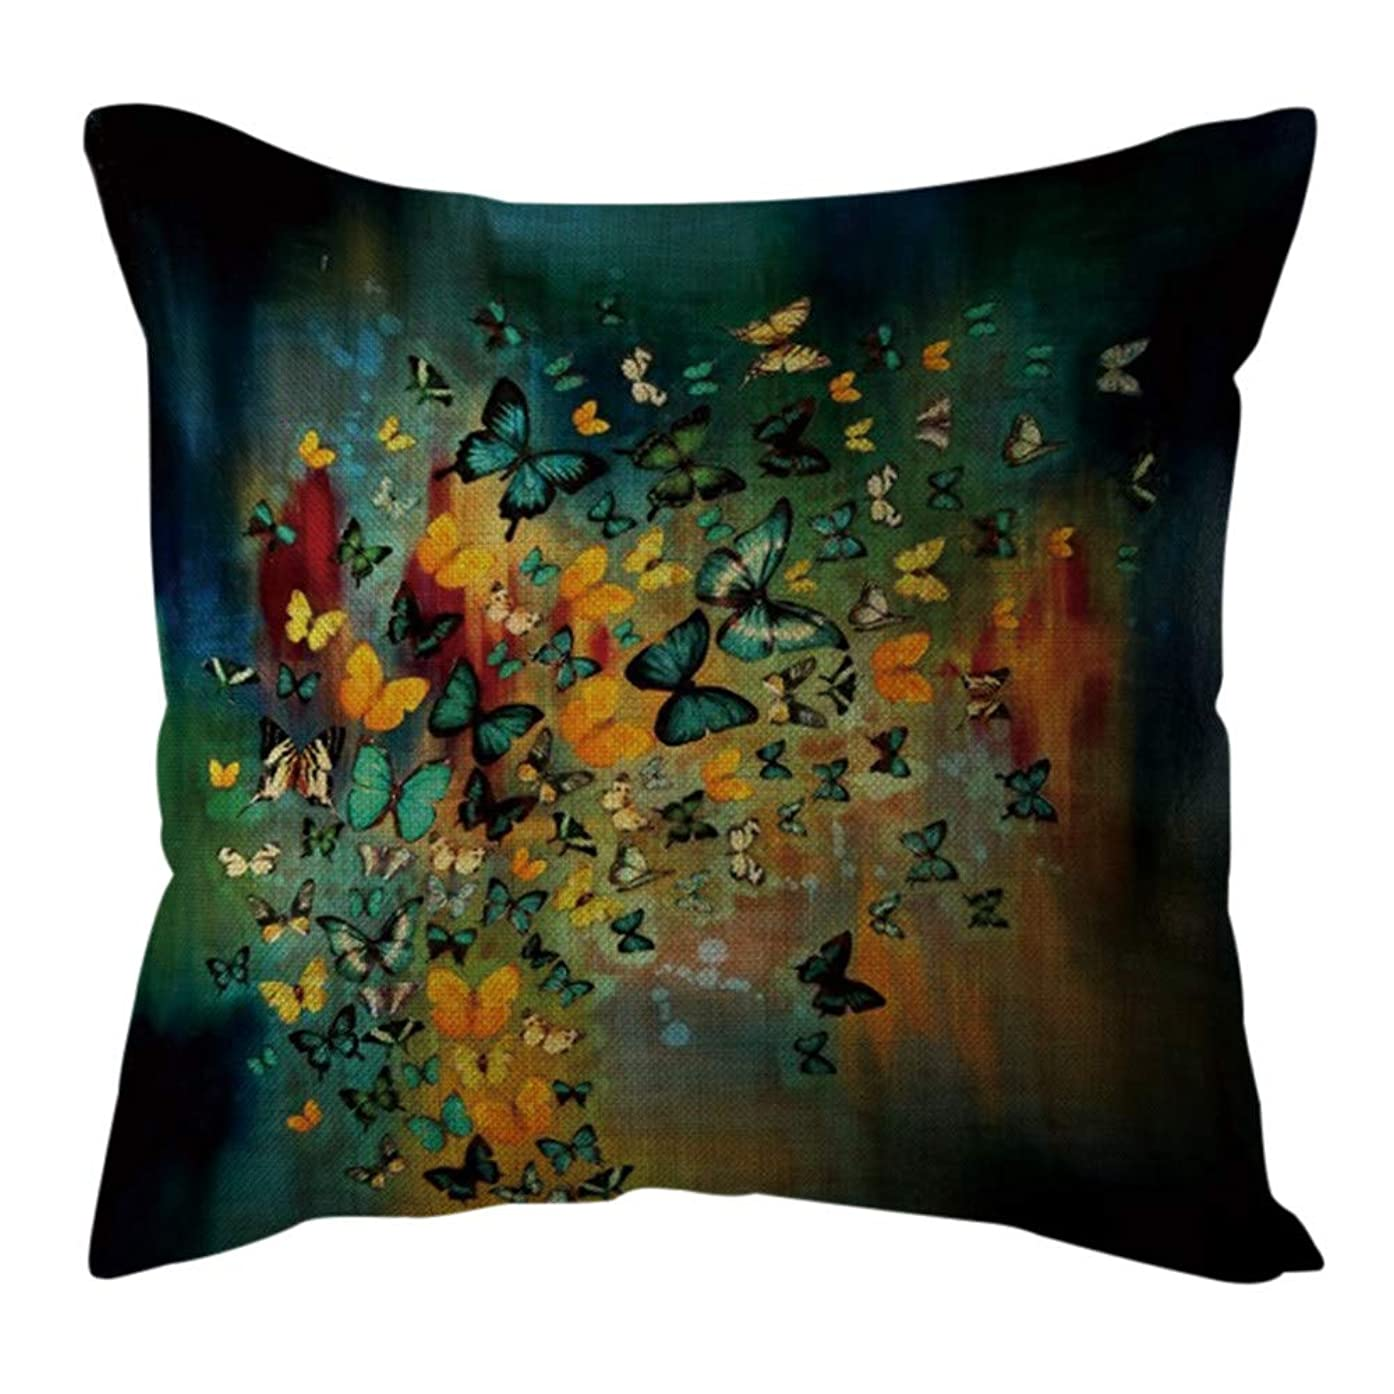 Throw Pillow Covers, E-Scenery Linen Printing Square Decorative Pillow Cases Cushion Cover for Sofa Bedroom Car Home Decor, 18 x 18 Inch (D)